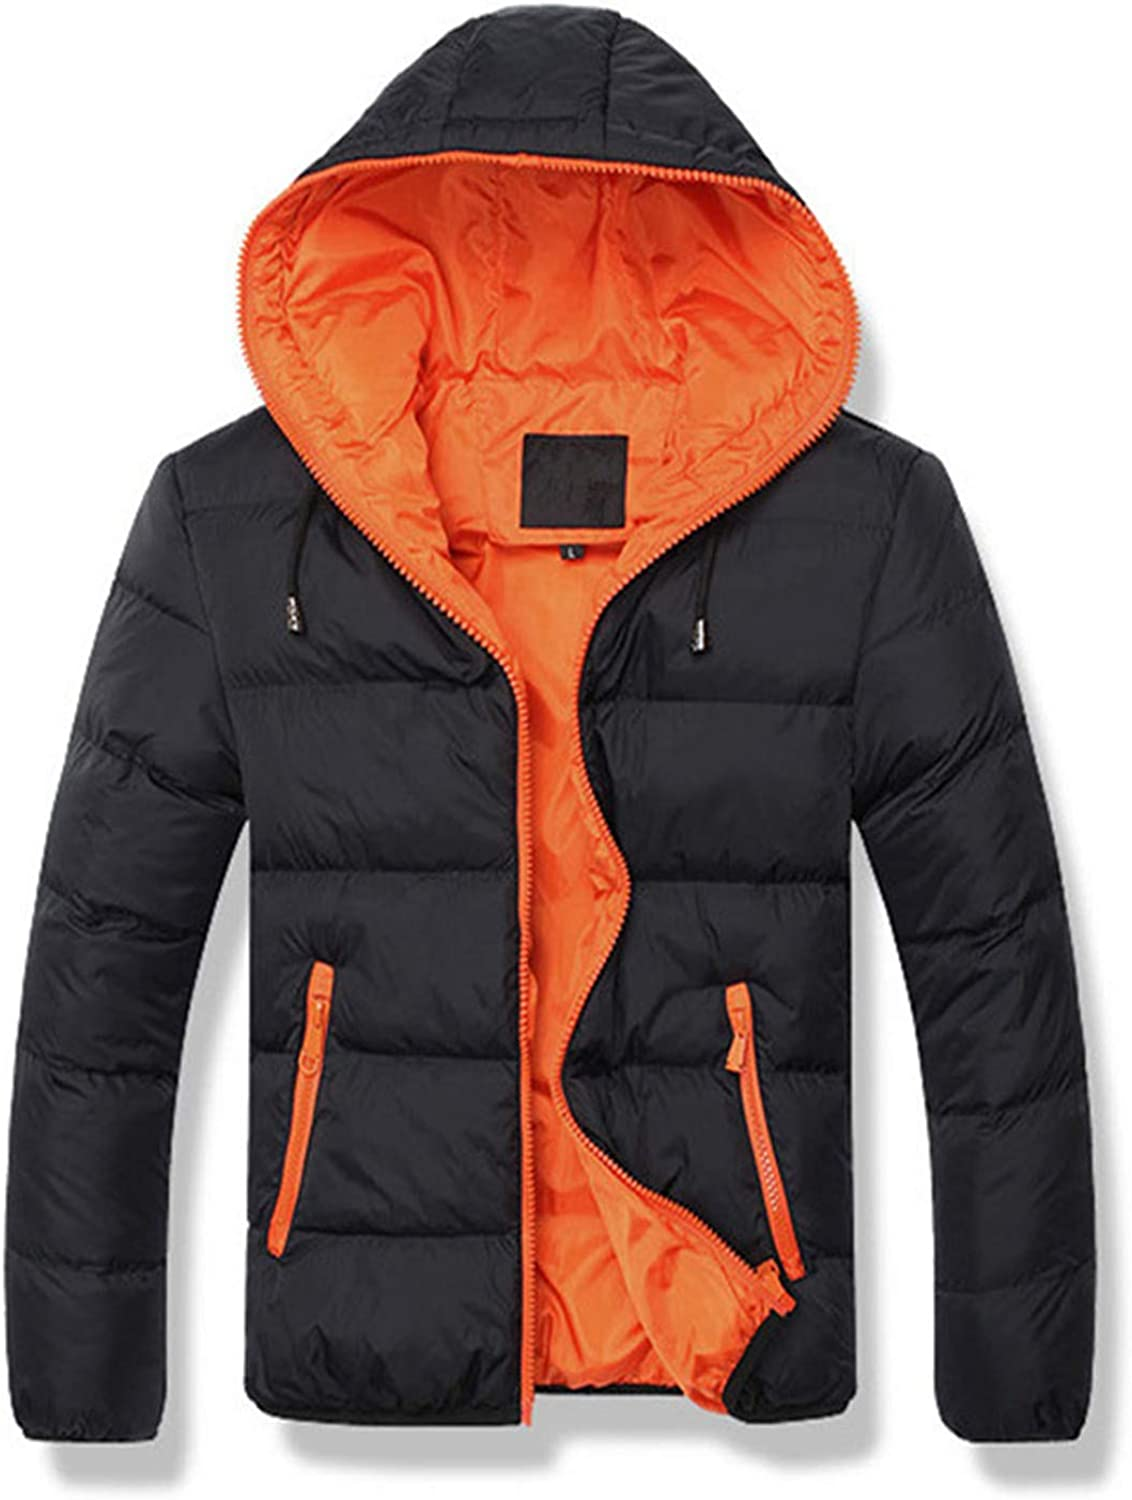 Men's Winter Jacket,Thicken Quilted Hooded Padded Down Alternative Puffer Coat Outerwear Overcoat (Orange,3X-Large)